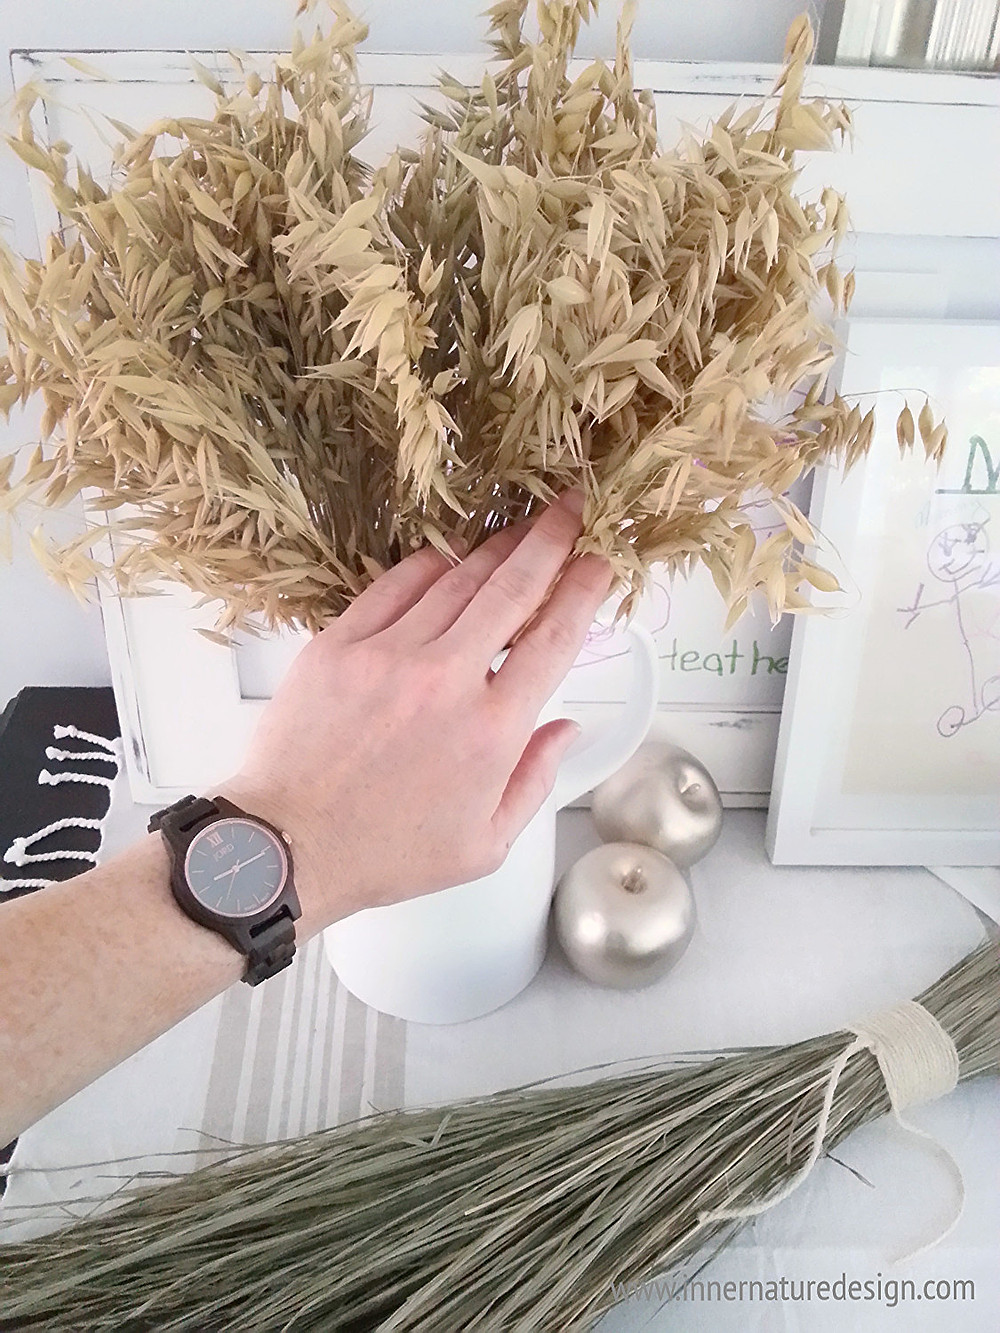 JORD Wood Watch and Inner Nature Design